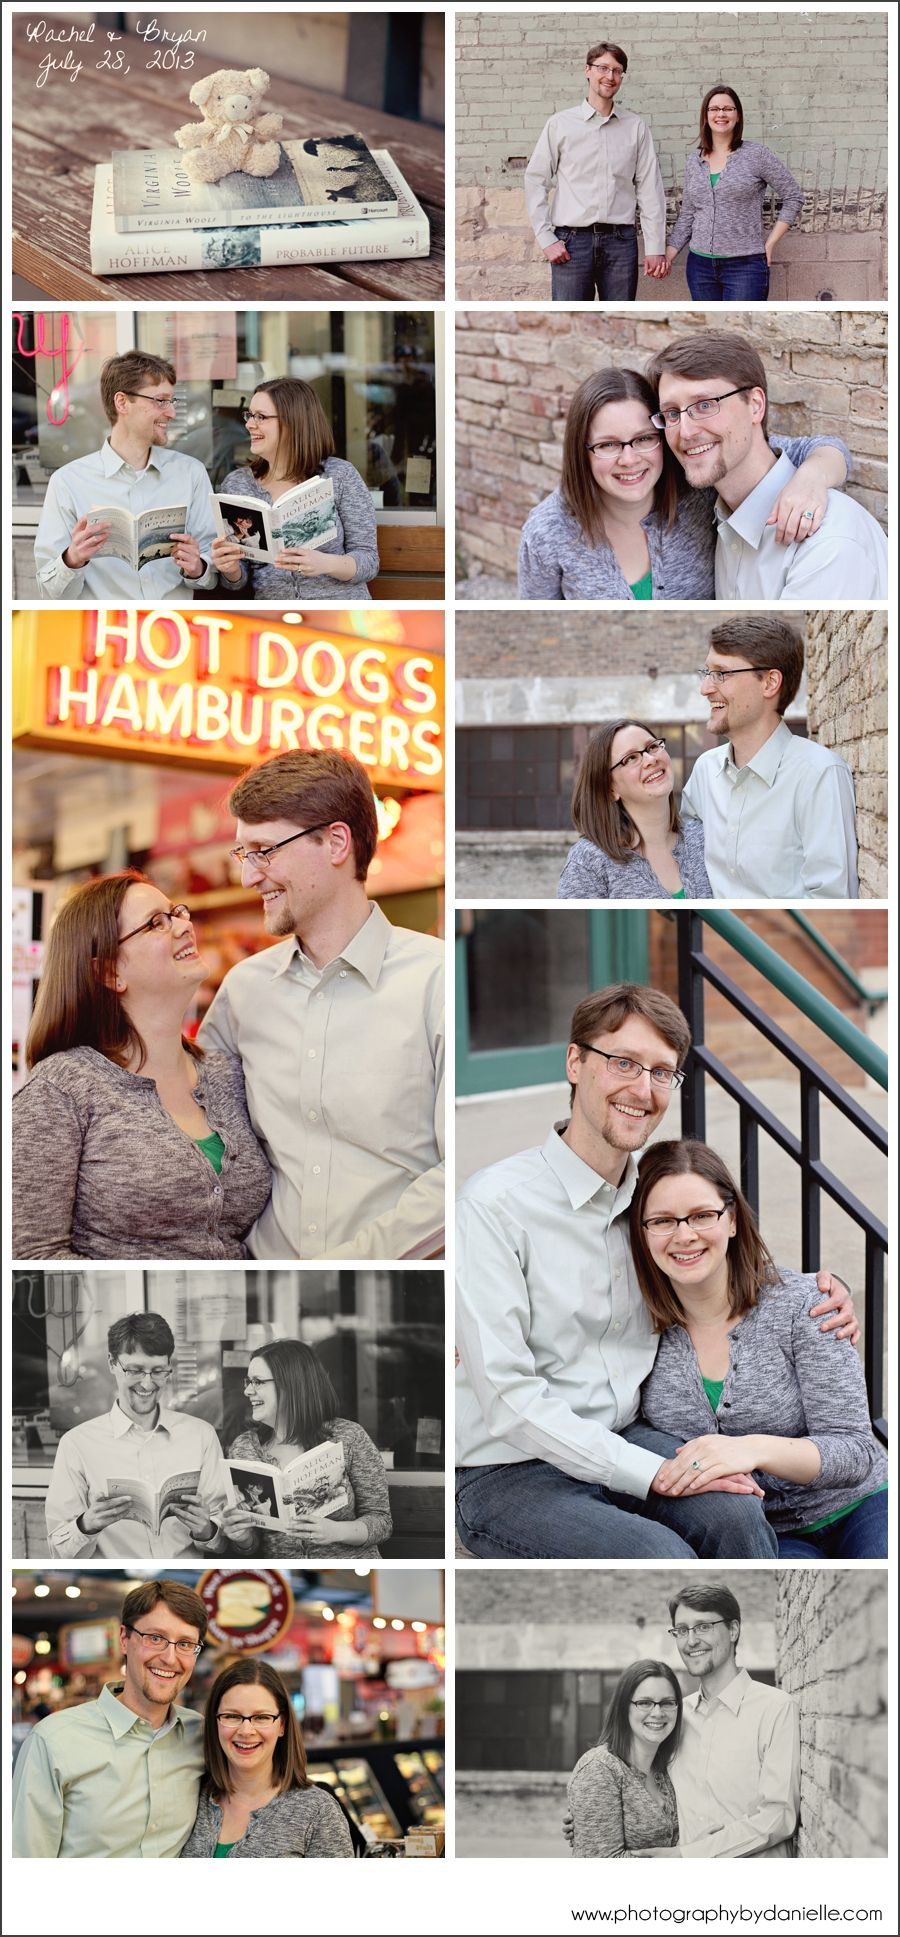 Milwaukee Engagement Session - Milwaukee Public Market and the Third Ward | Photography by Danielle, Milwaukee, WI